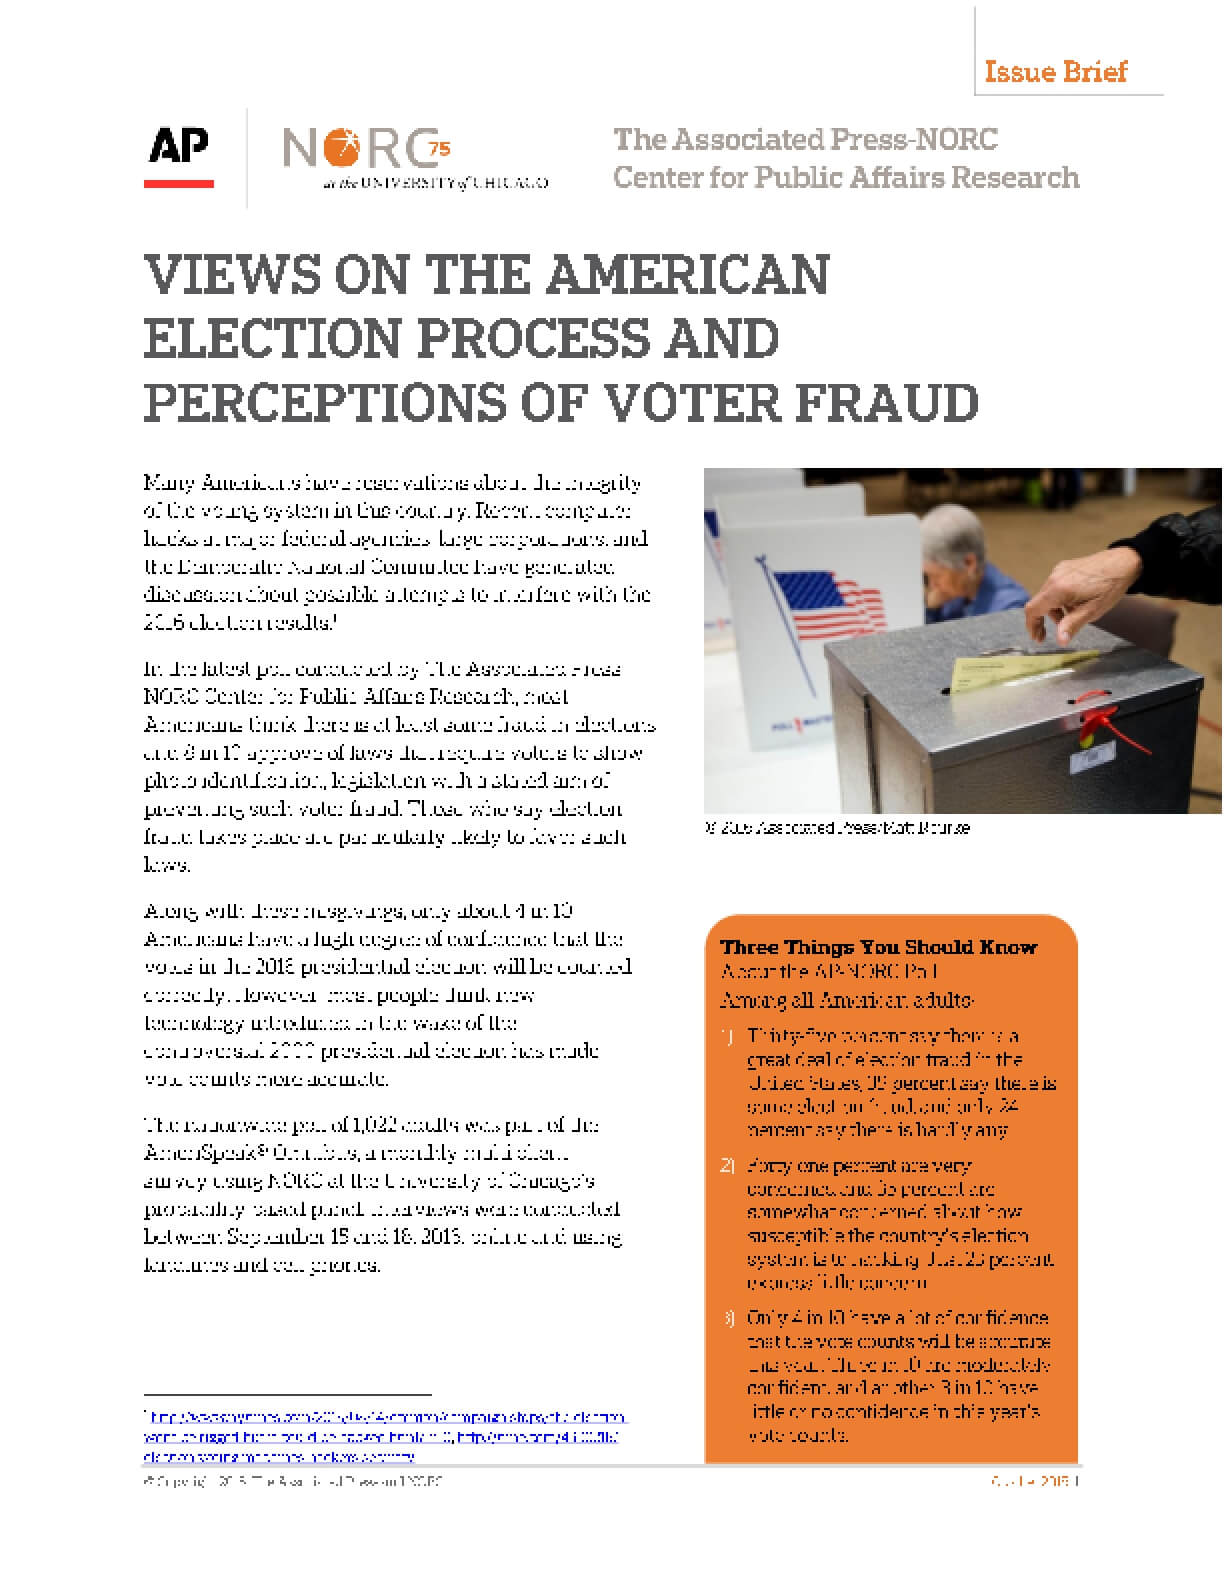 Views on the American Election Process and Perceptions of Voter Fraud